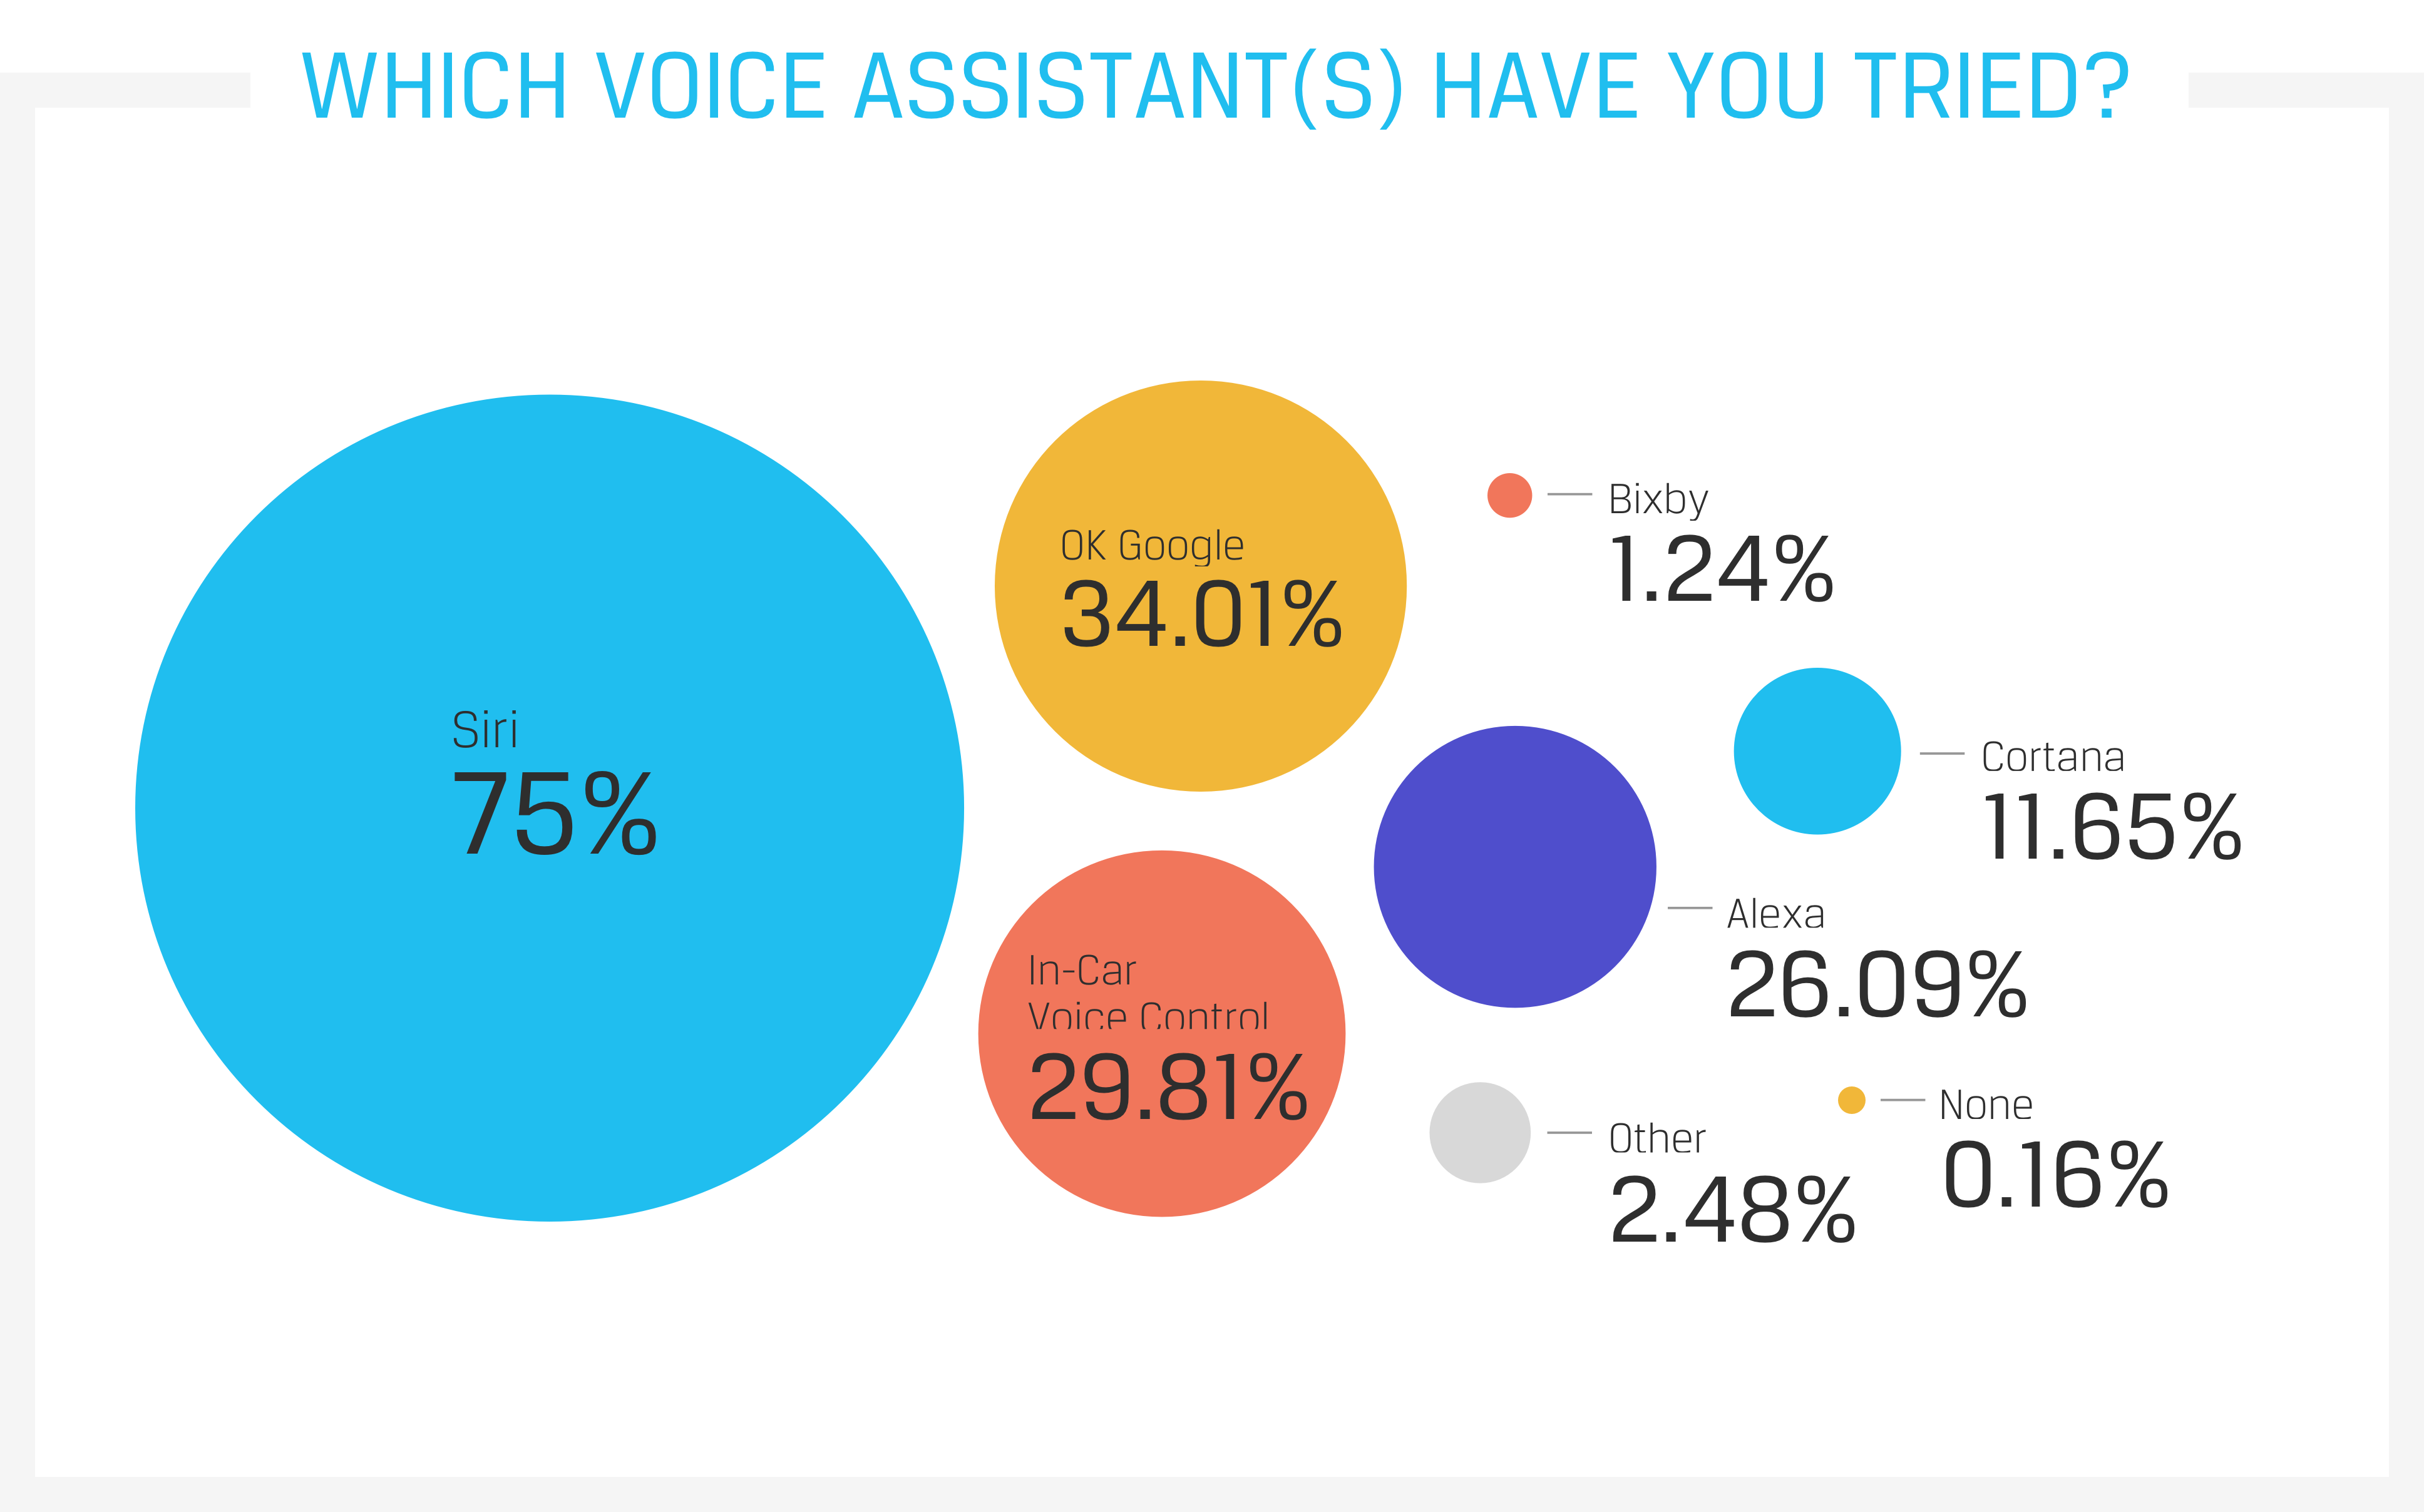 Which voice assistant(s) have you tried?